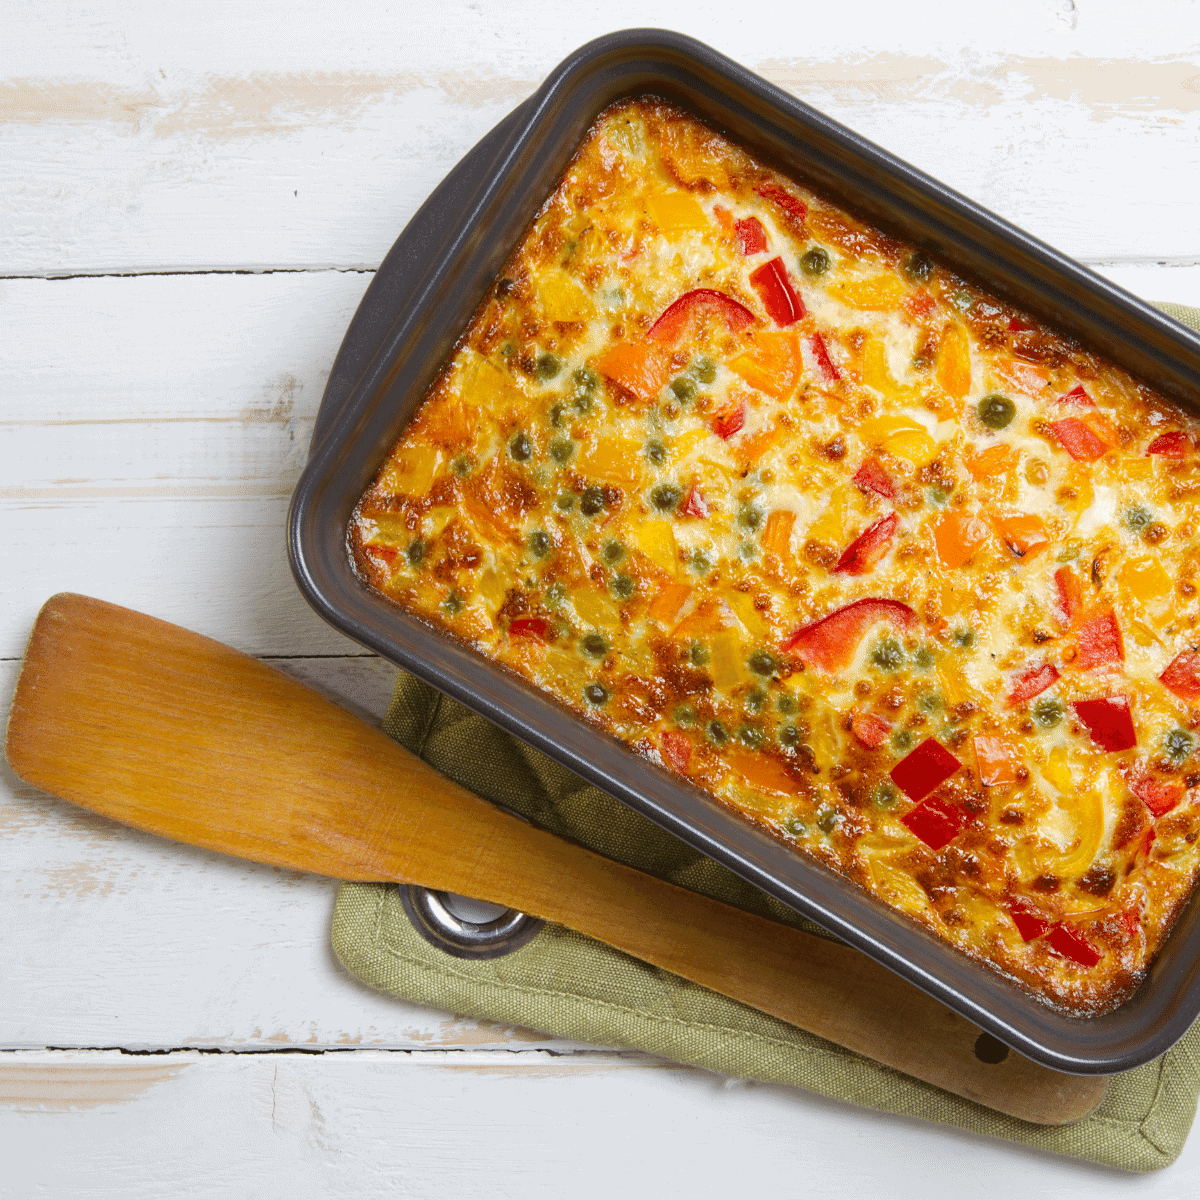 Oven baked fluffy omelet casserole made with fresh peppers, cheese, and ham